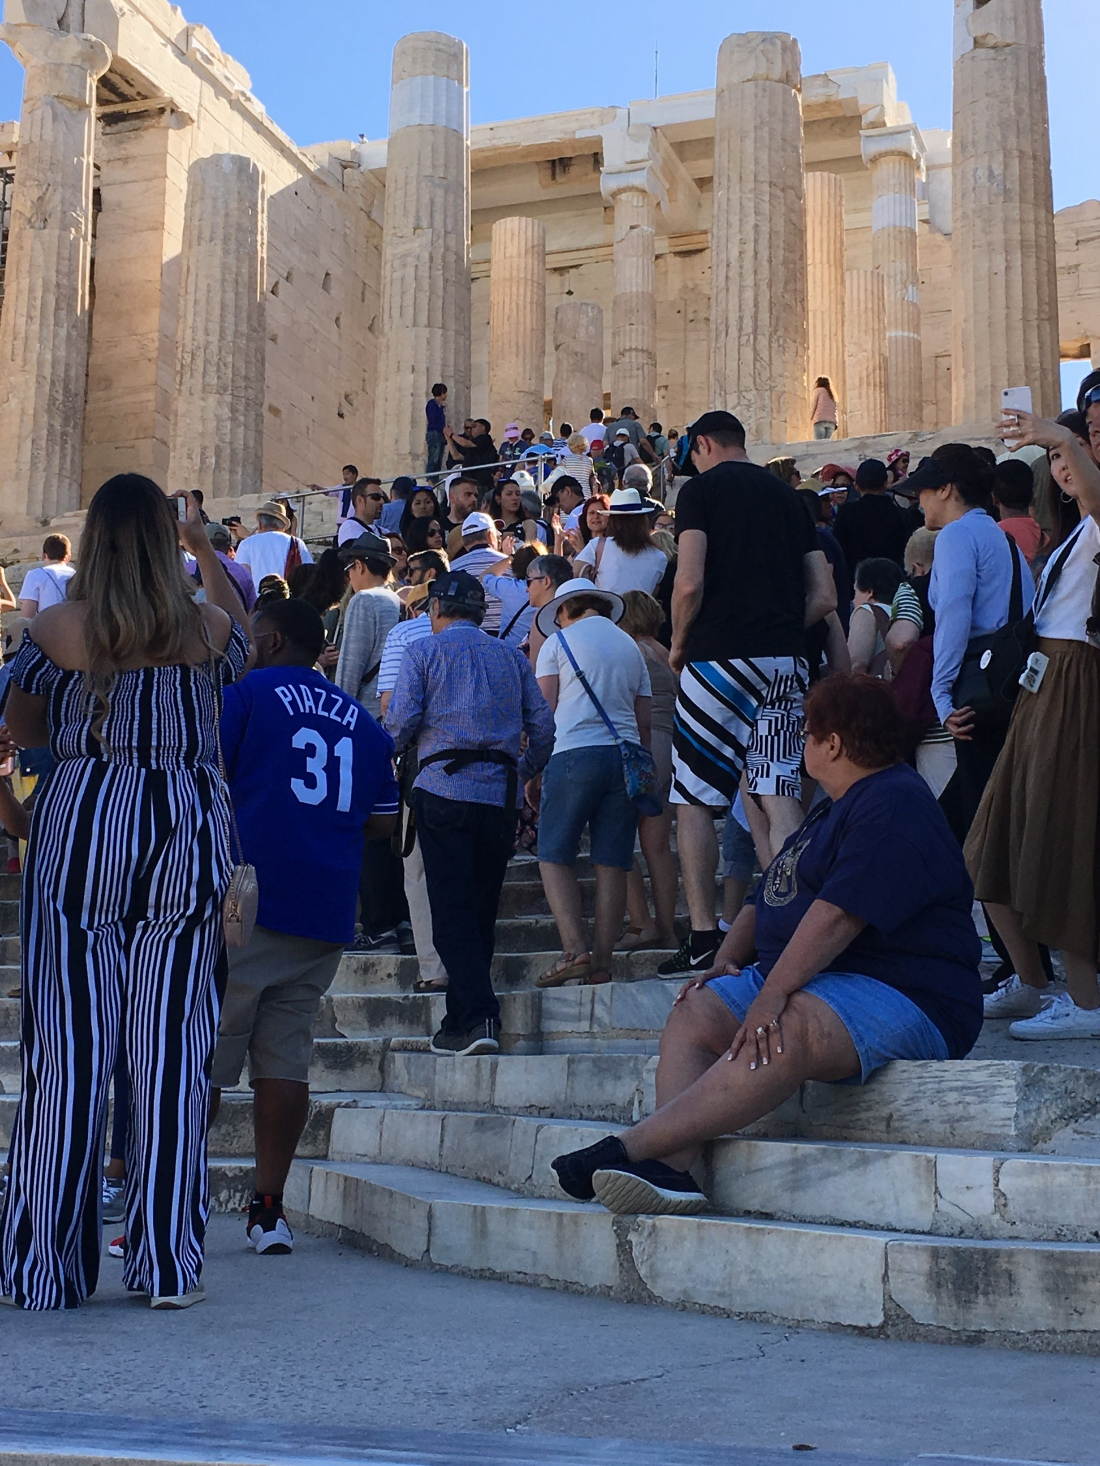 Steps up to the Parthenon a couple hours after opening. BROWNELL, May 2019.